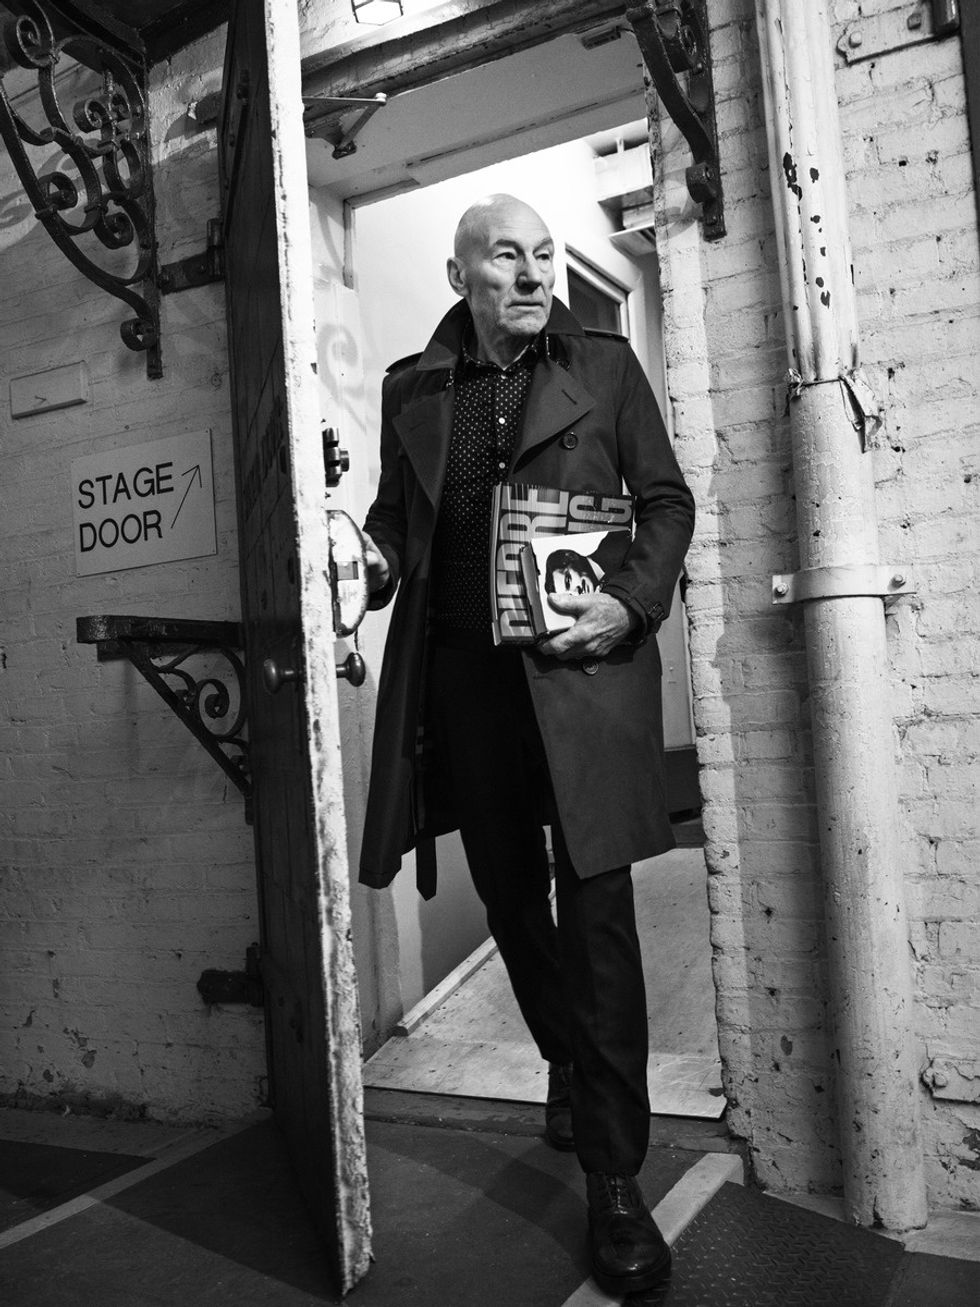 Black and white portrait of Sir Patrick Stewart exiting stage door of a theater.